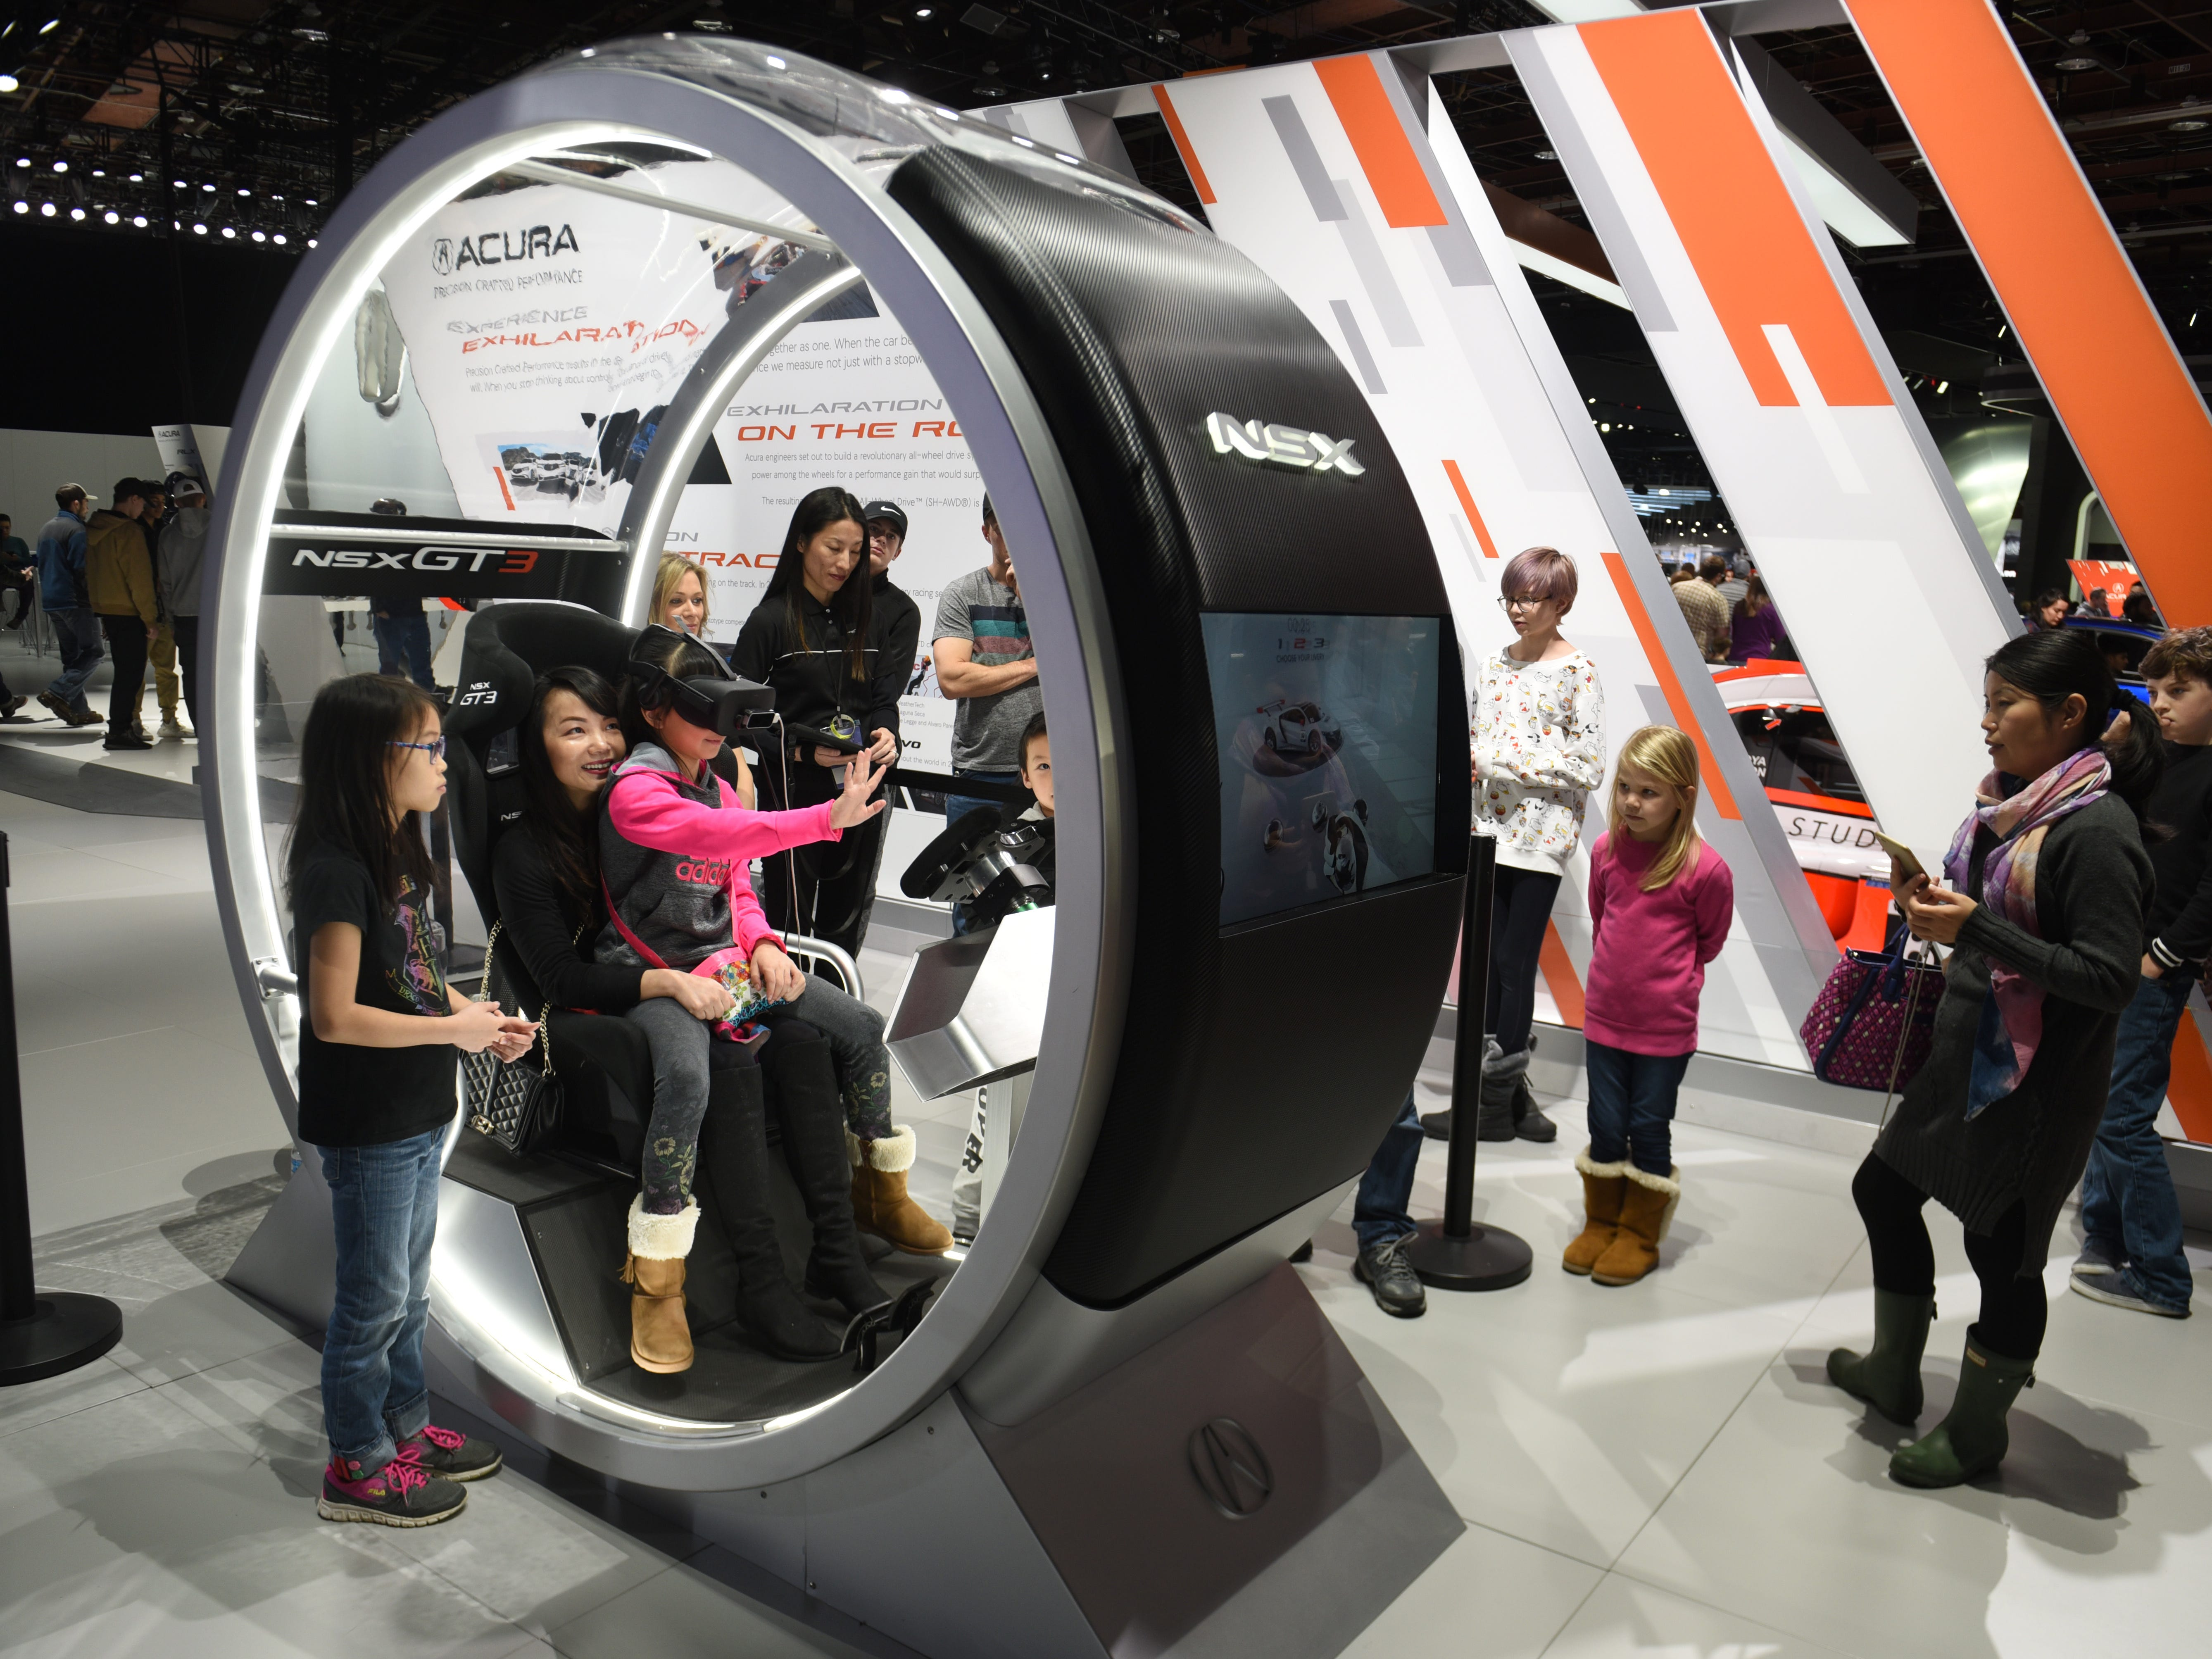 Fiona Tian, 9, sits on the lap of Tingting Yan as they enjoy the Acura GT3 virtual reality simulator on Saturday, January 19, 2019.